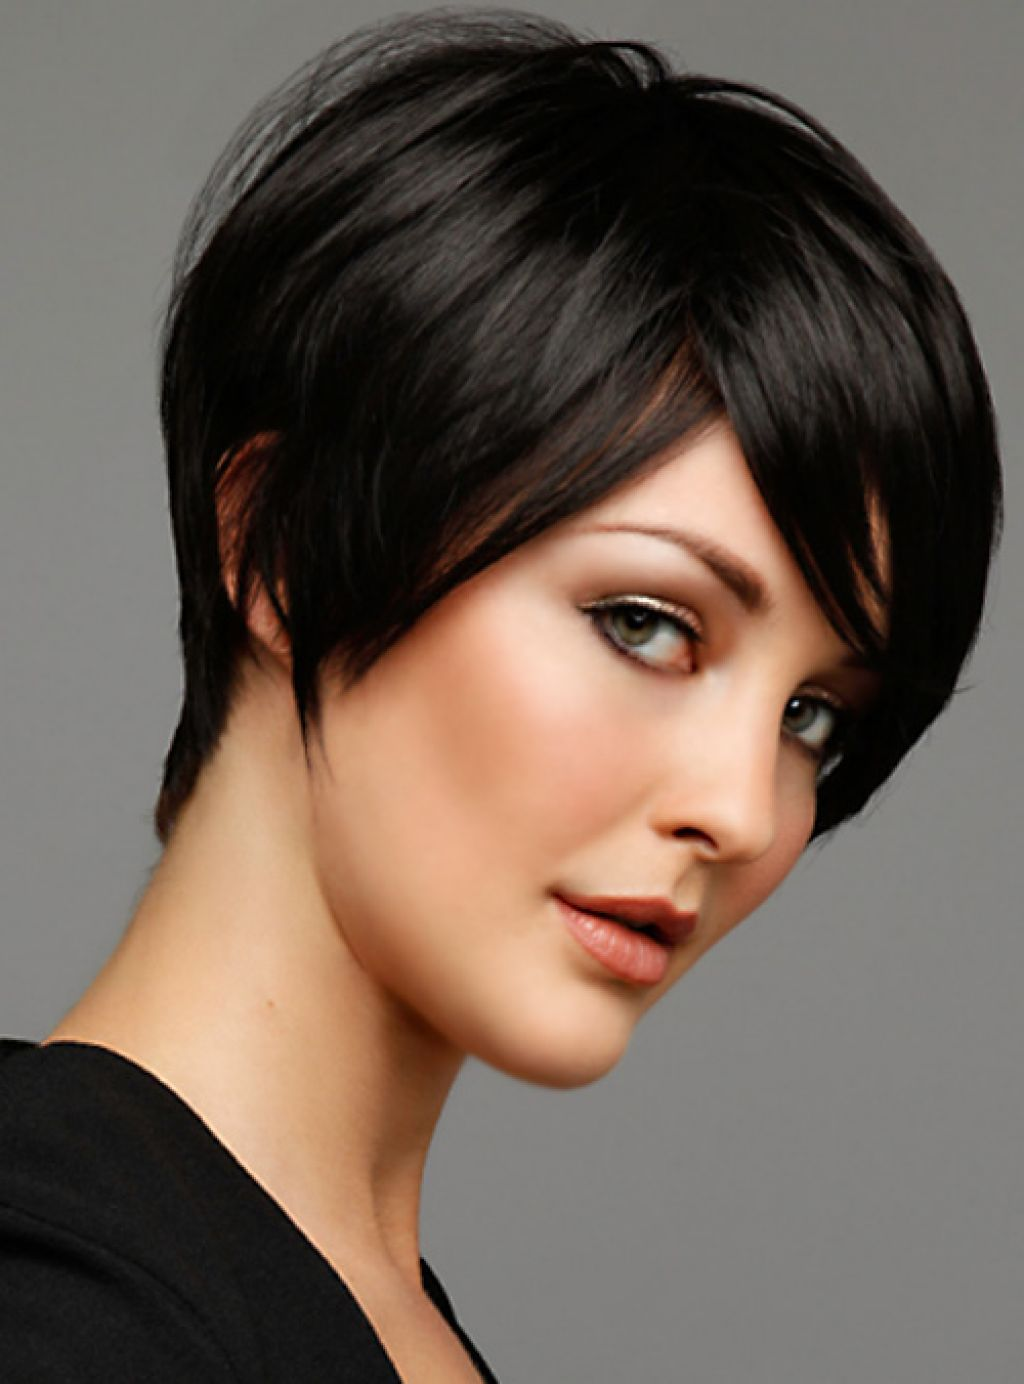 Womens Short Hairstyles Bob Haircuts For Short Hair  Women's Short Hairstyle  Pinterest